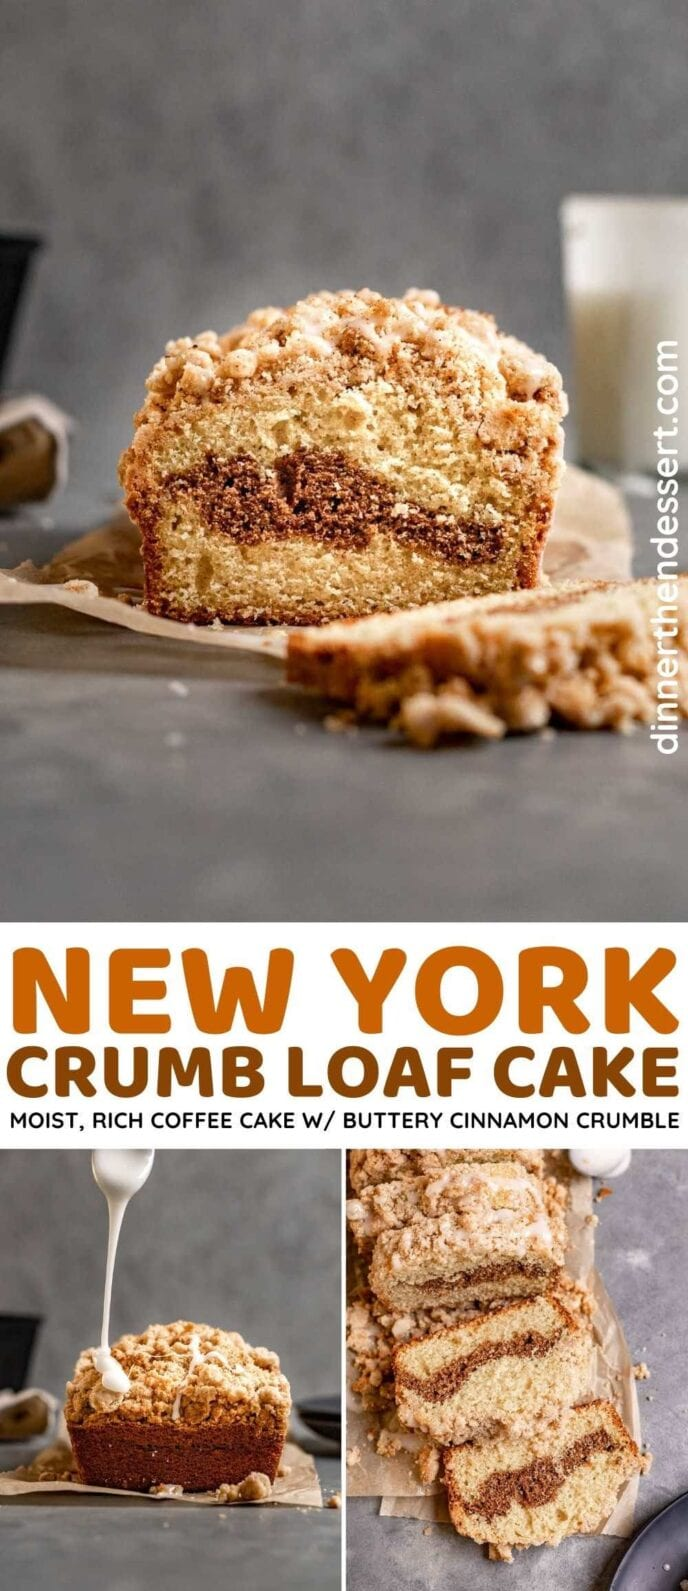 New York Crumb Loaf Cake collage